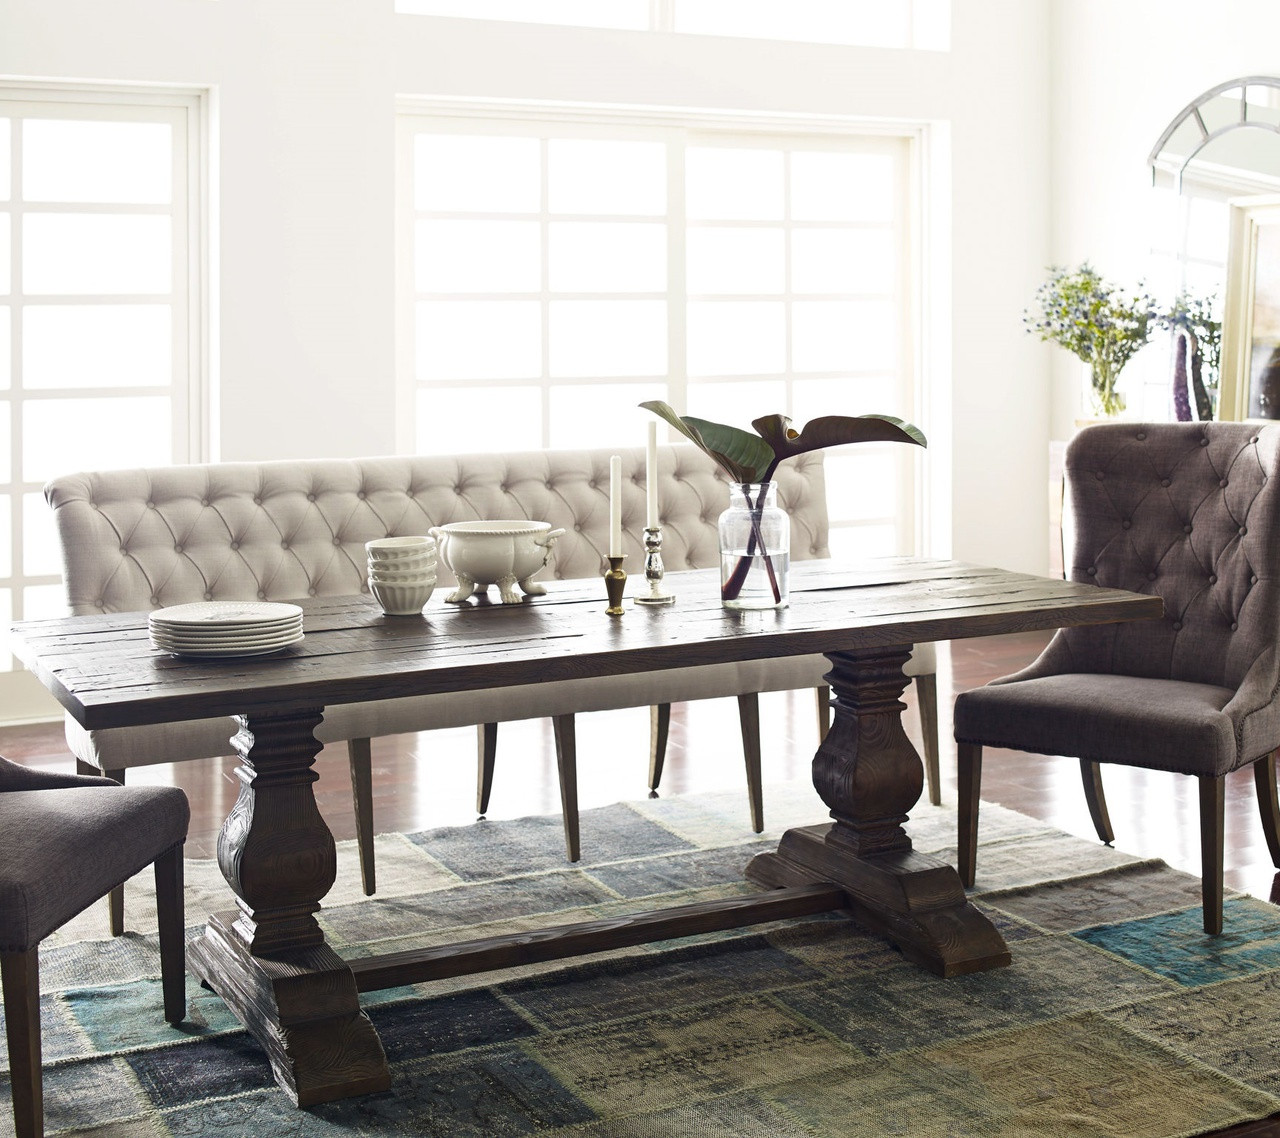 Dinette Bench Seating: French Tufted Upholstered Dining Bench Banquette